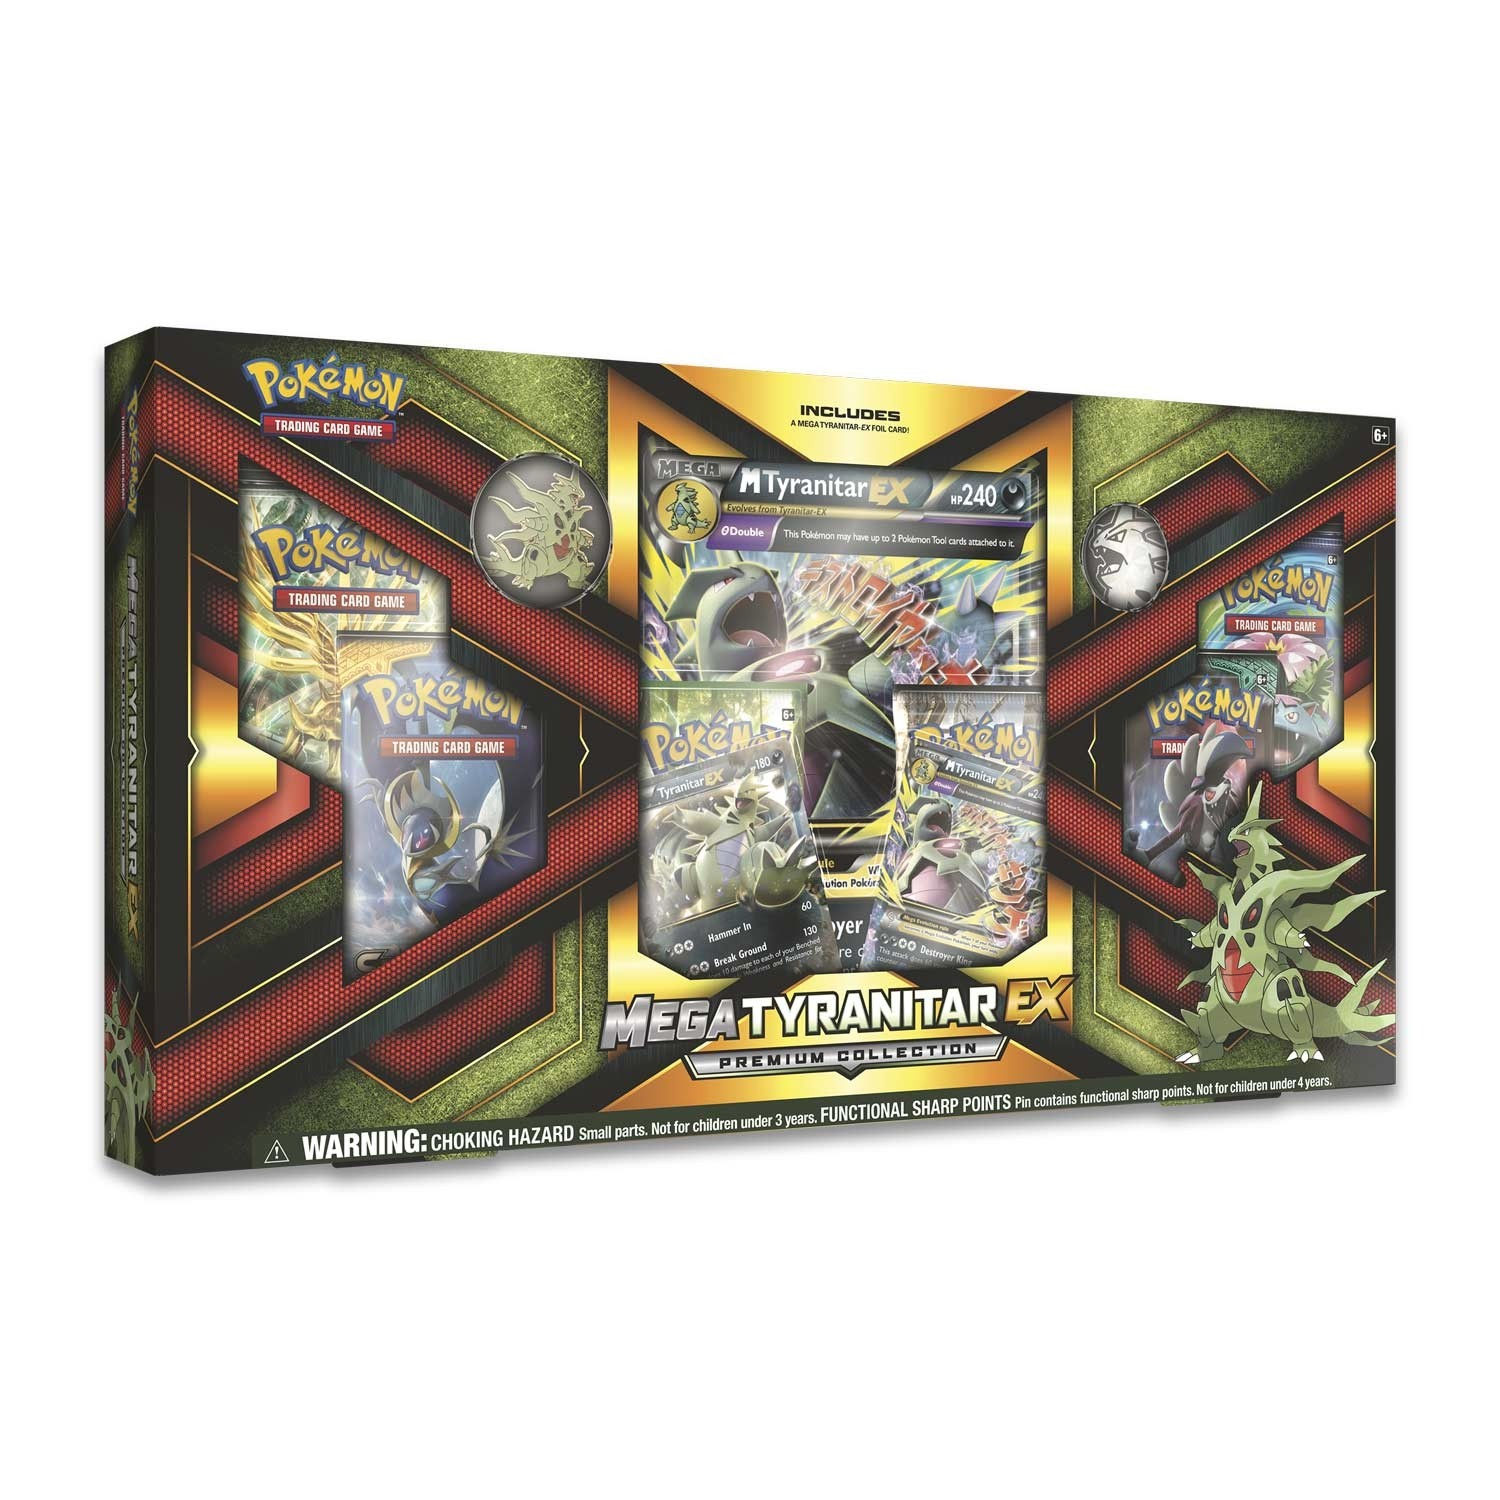 Pokémon TCG: Mega Tyranitar-EX Premium Collection